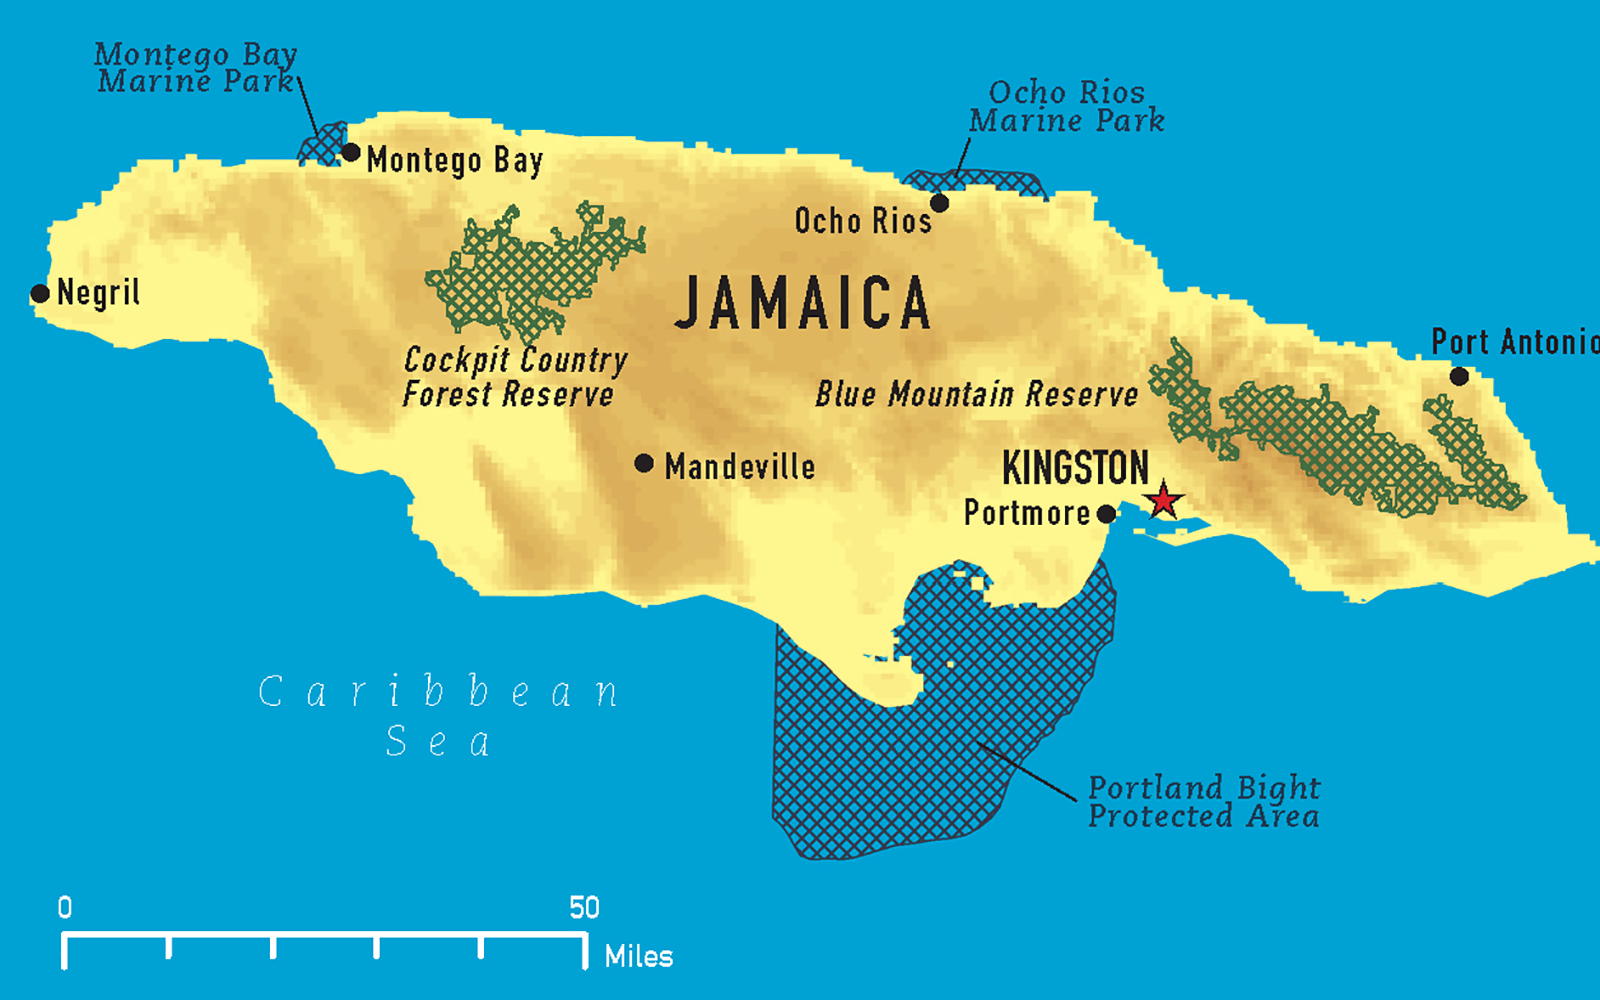 This is a map of Jamaica which is south of Florida and is one of the